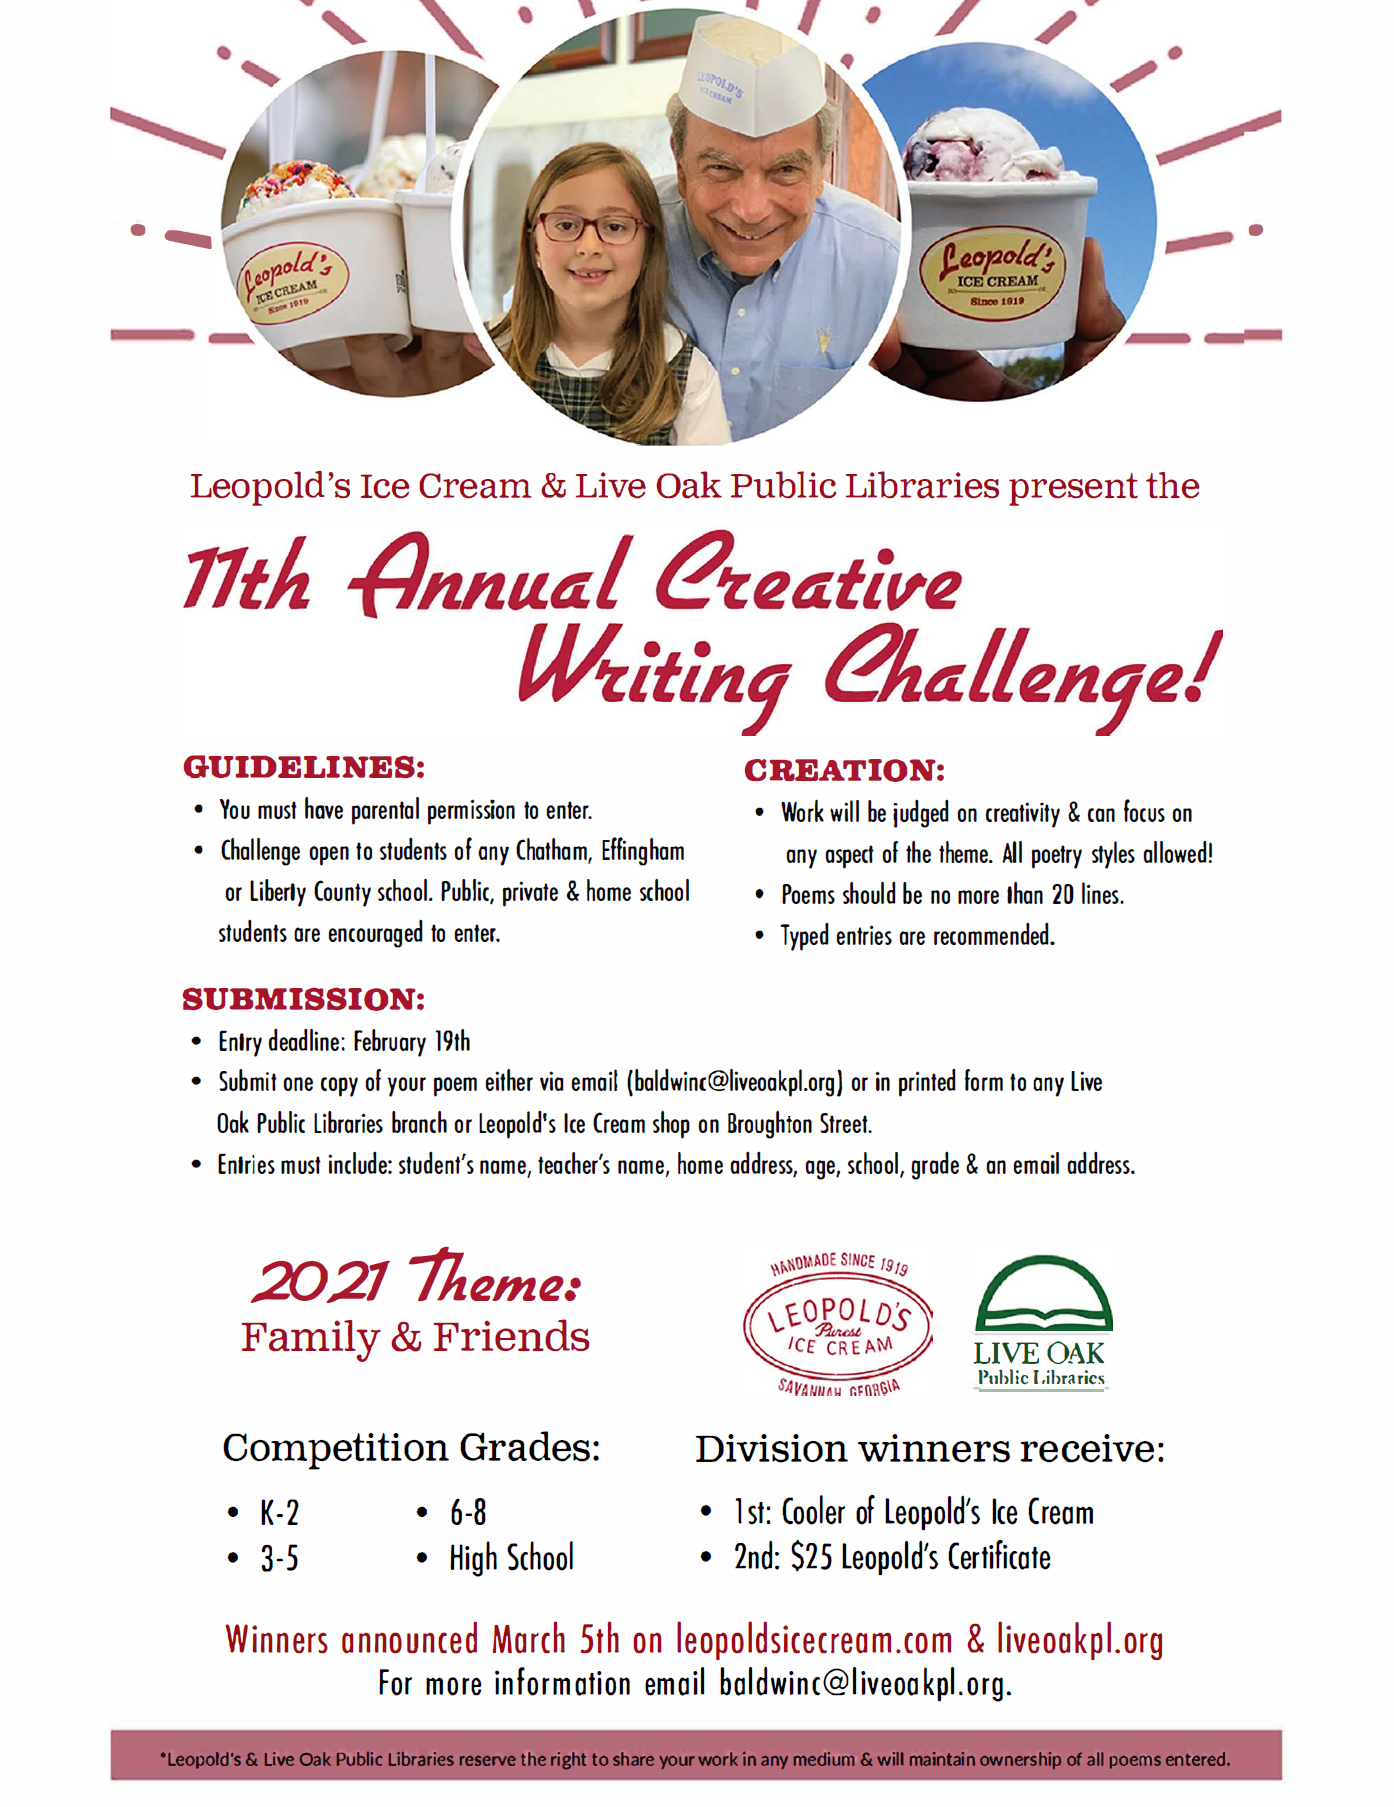 Leoolds' Creative Writing Contest 2021